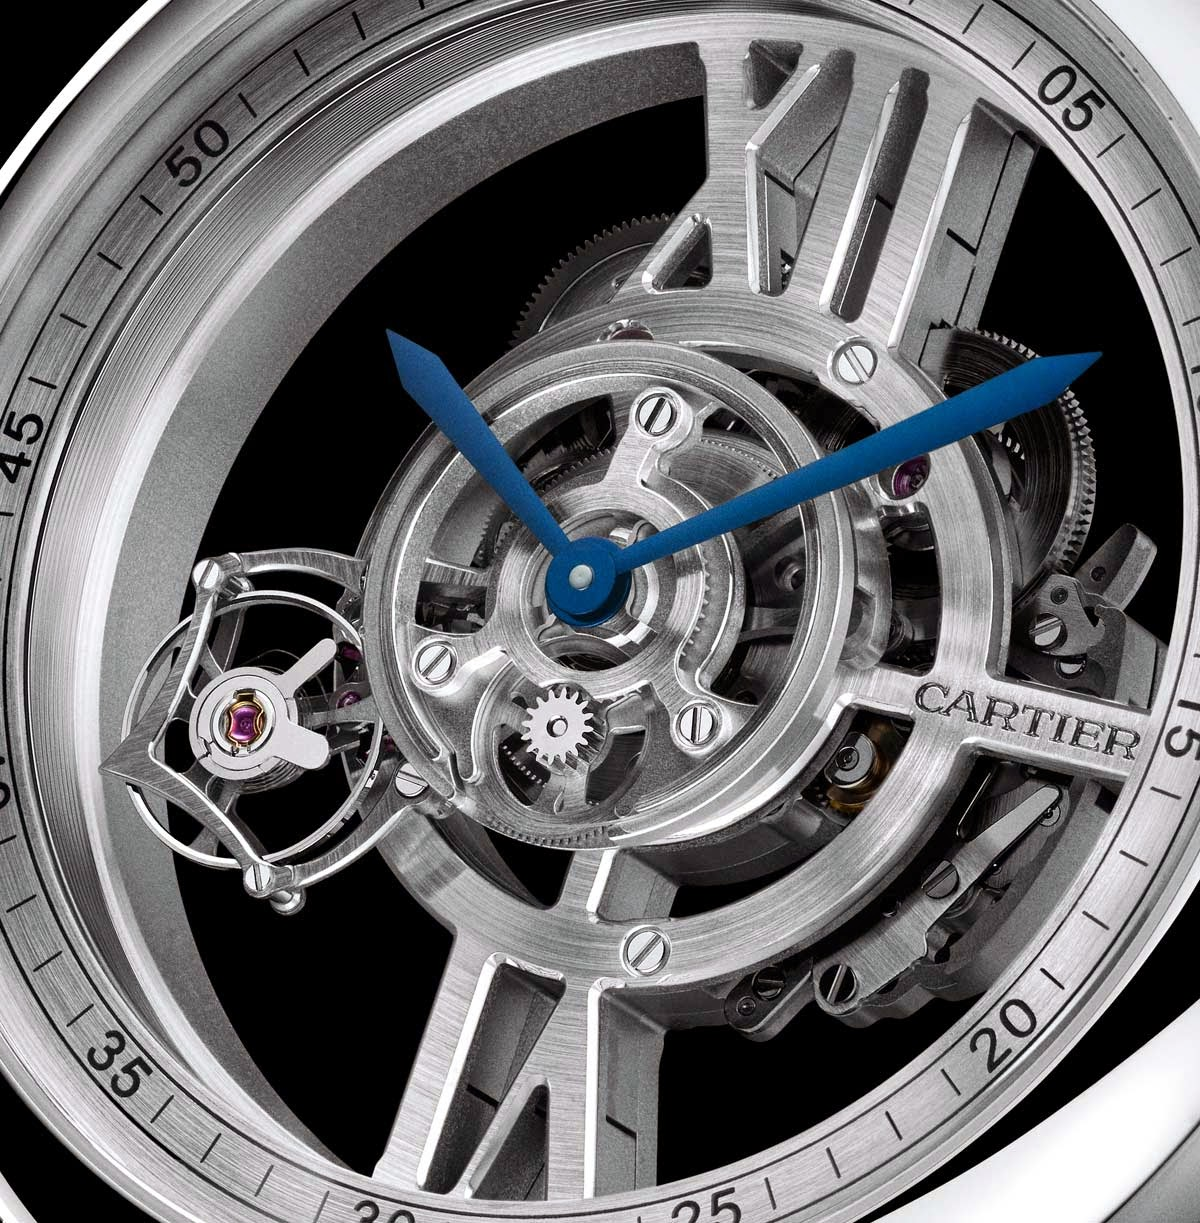 Cartier Rotonde Astrotourbillon Skeleton  Cartier-Astrotourbillon-3